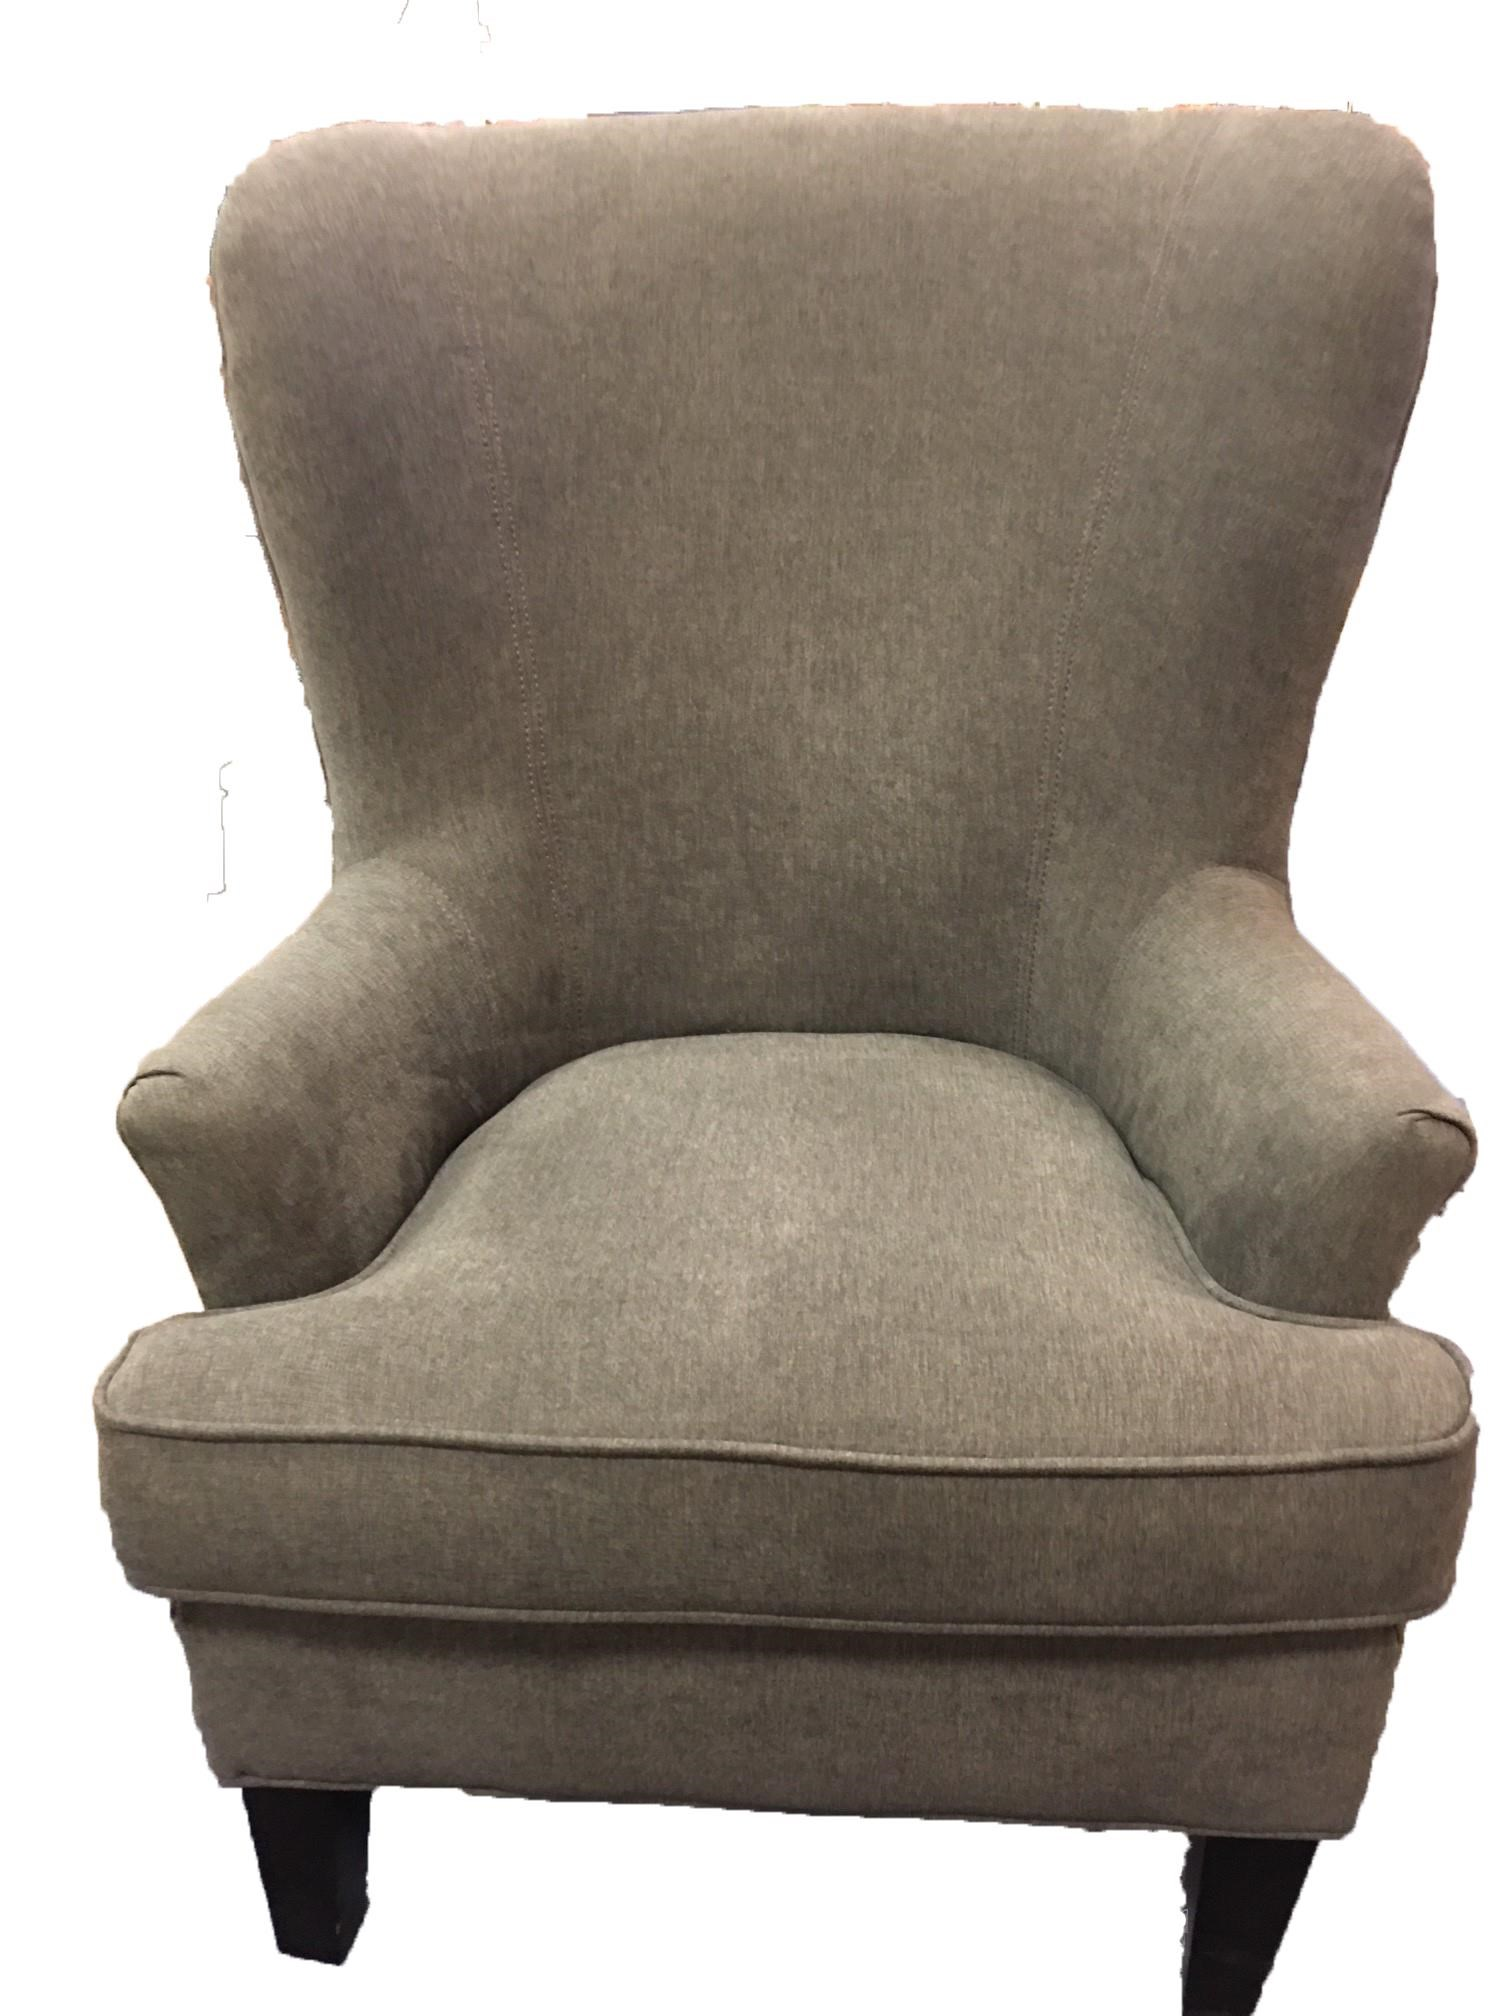 Saylor Wing Chair by England at Godby Home Furnishings